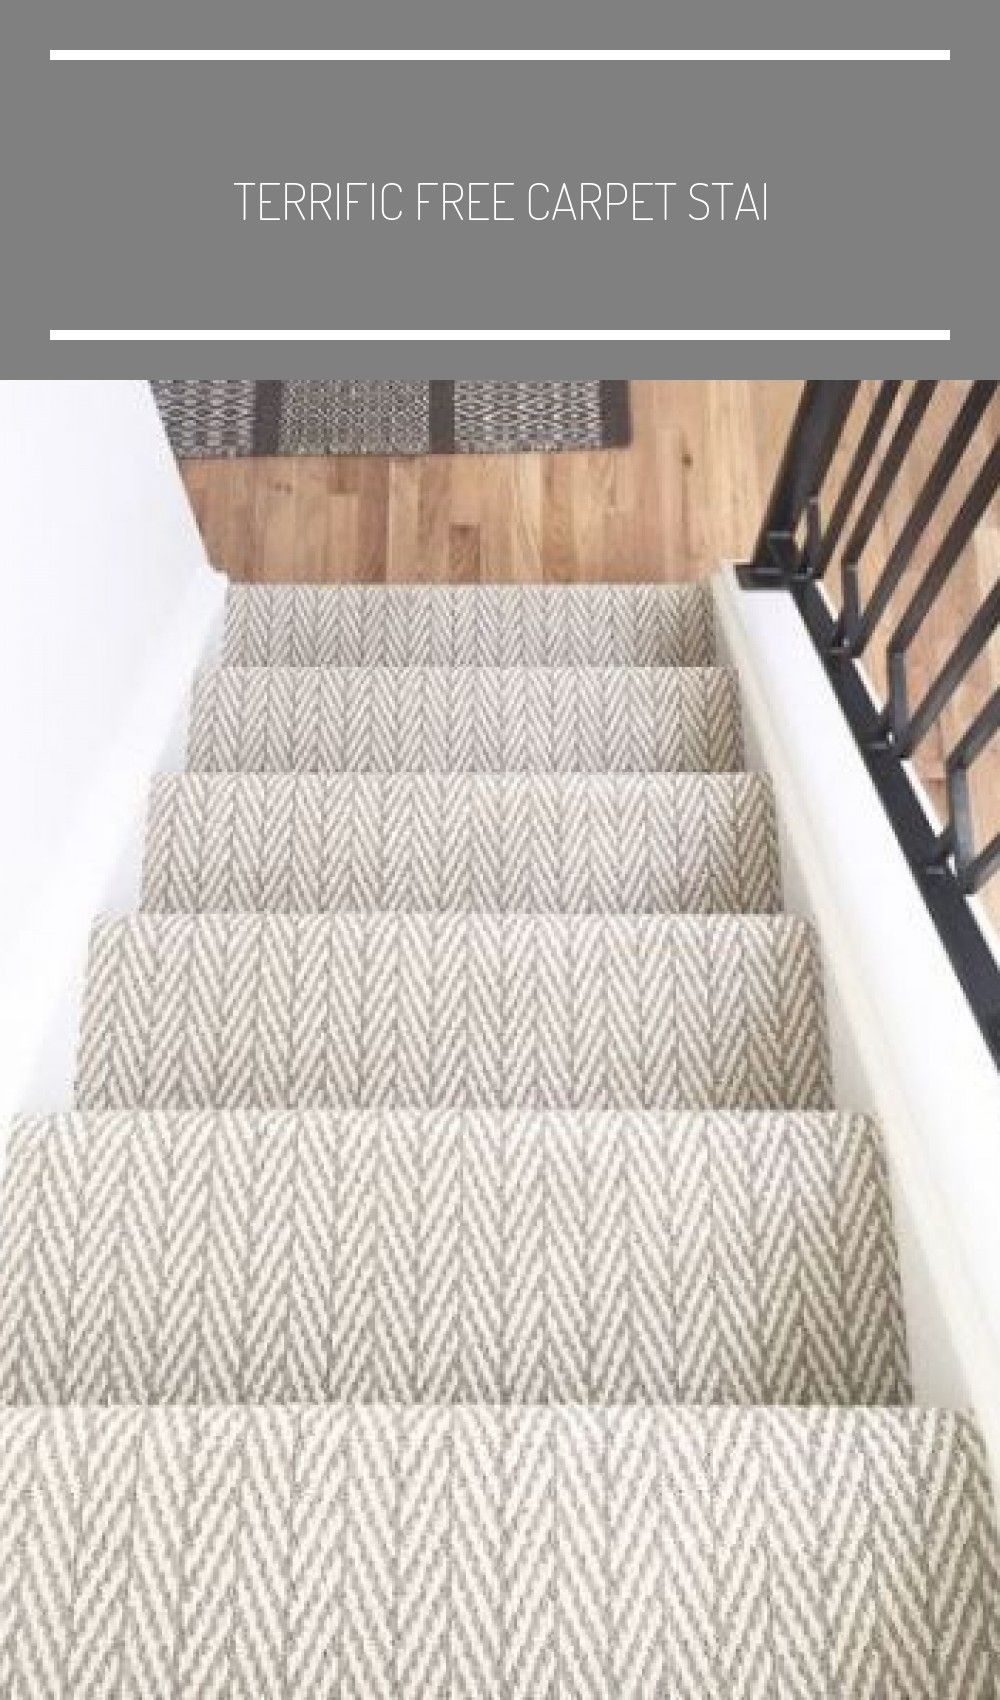 Terrific Free Carpet Stairs basement Style One of the fastest approaches to reva... - carpet-stairs -  Terrific Free Carpet Stairs basement Style One of the fastest approaches to revamp your tired old s - #approaches #Basement #Carpet #carpetstairs #fastest #free #hausmithallekaufen #reva #Stairs #Style #Terrific